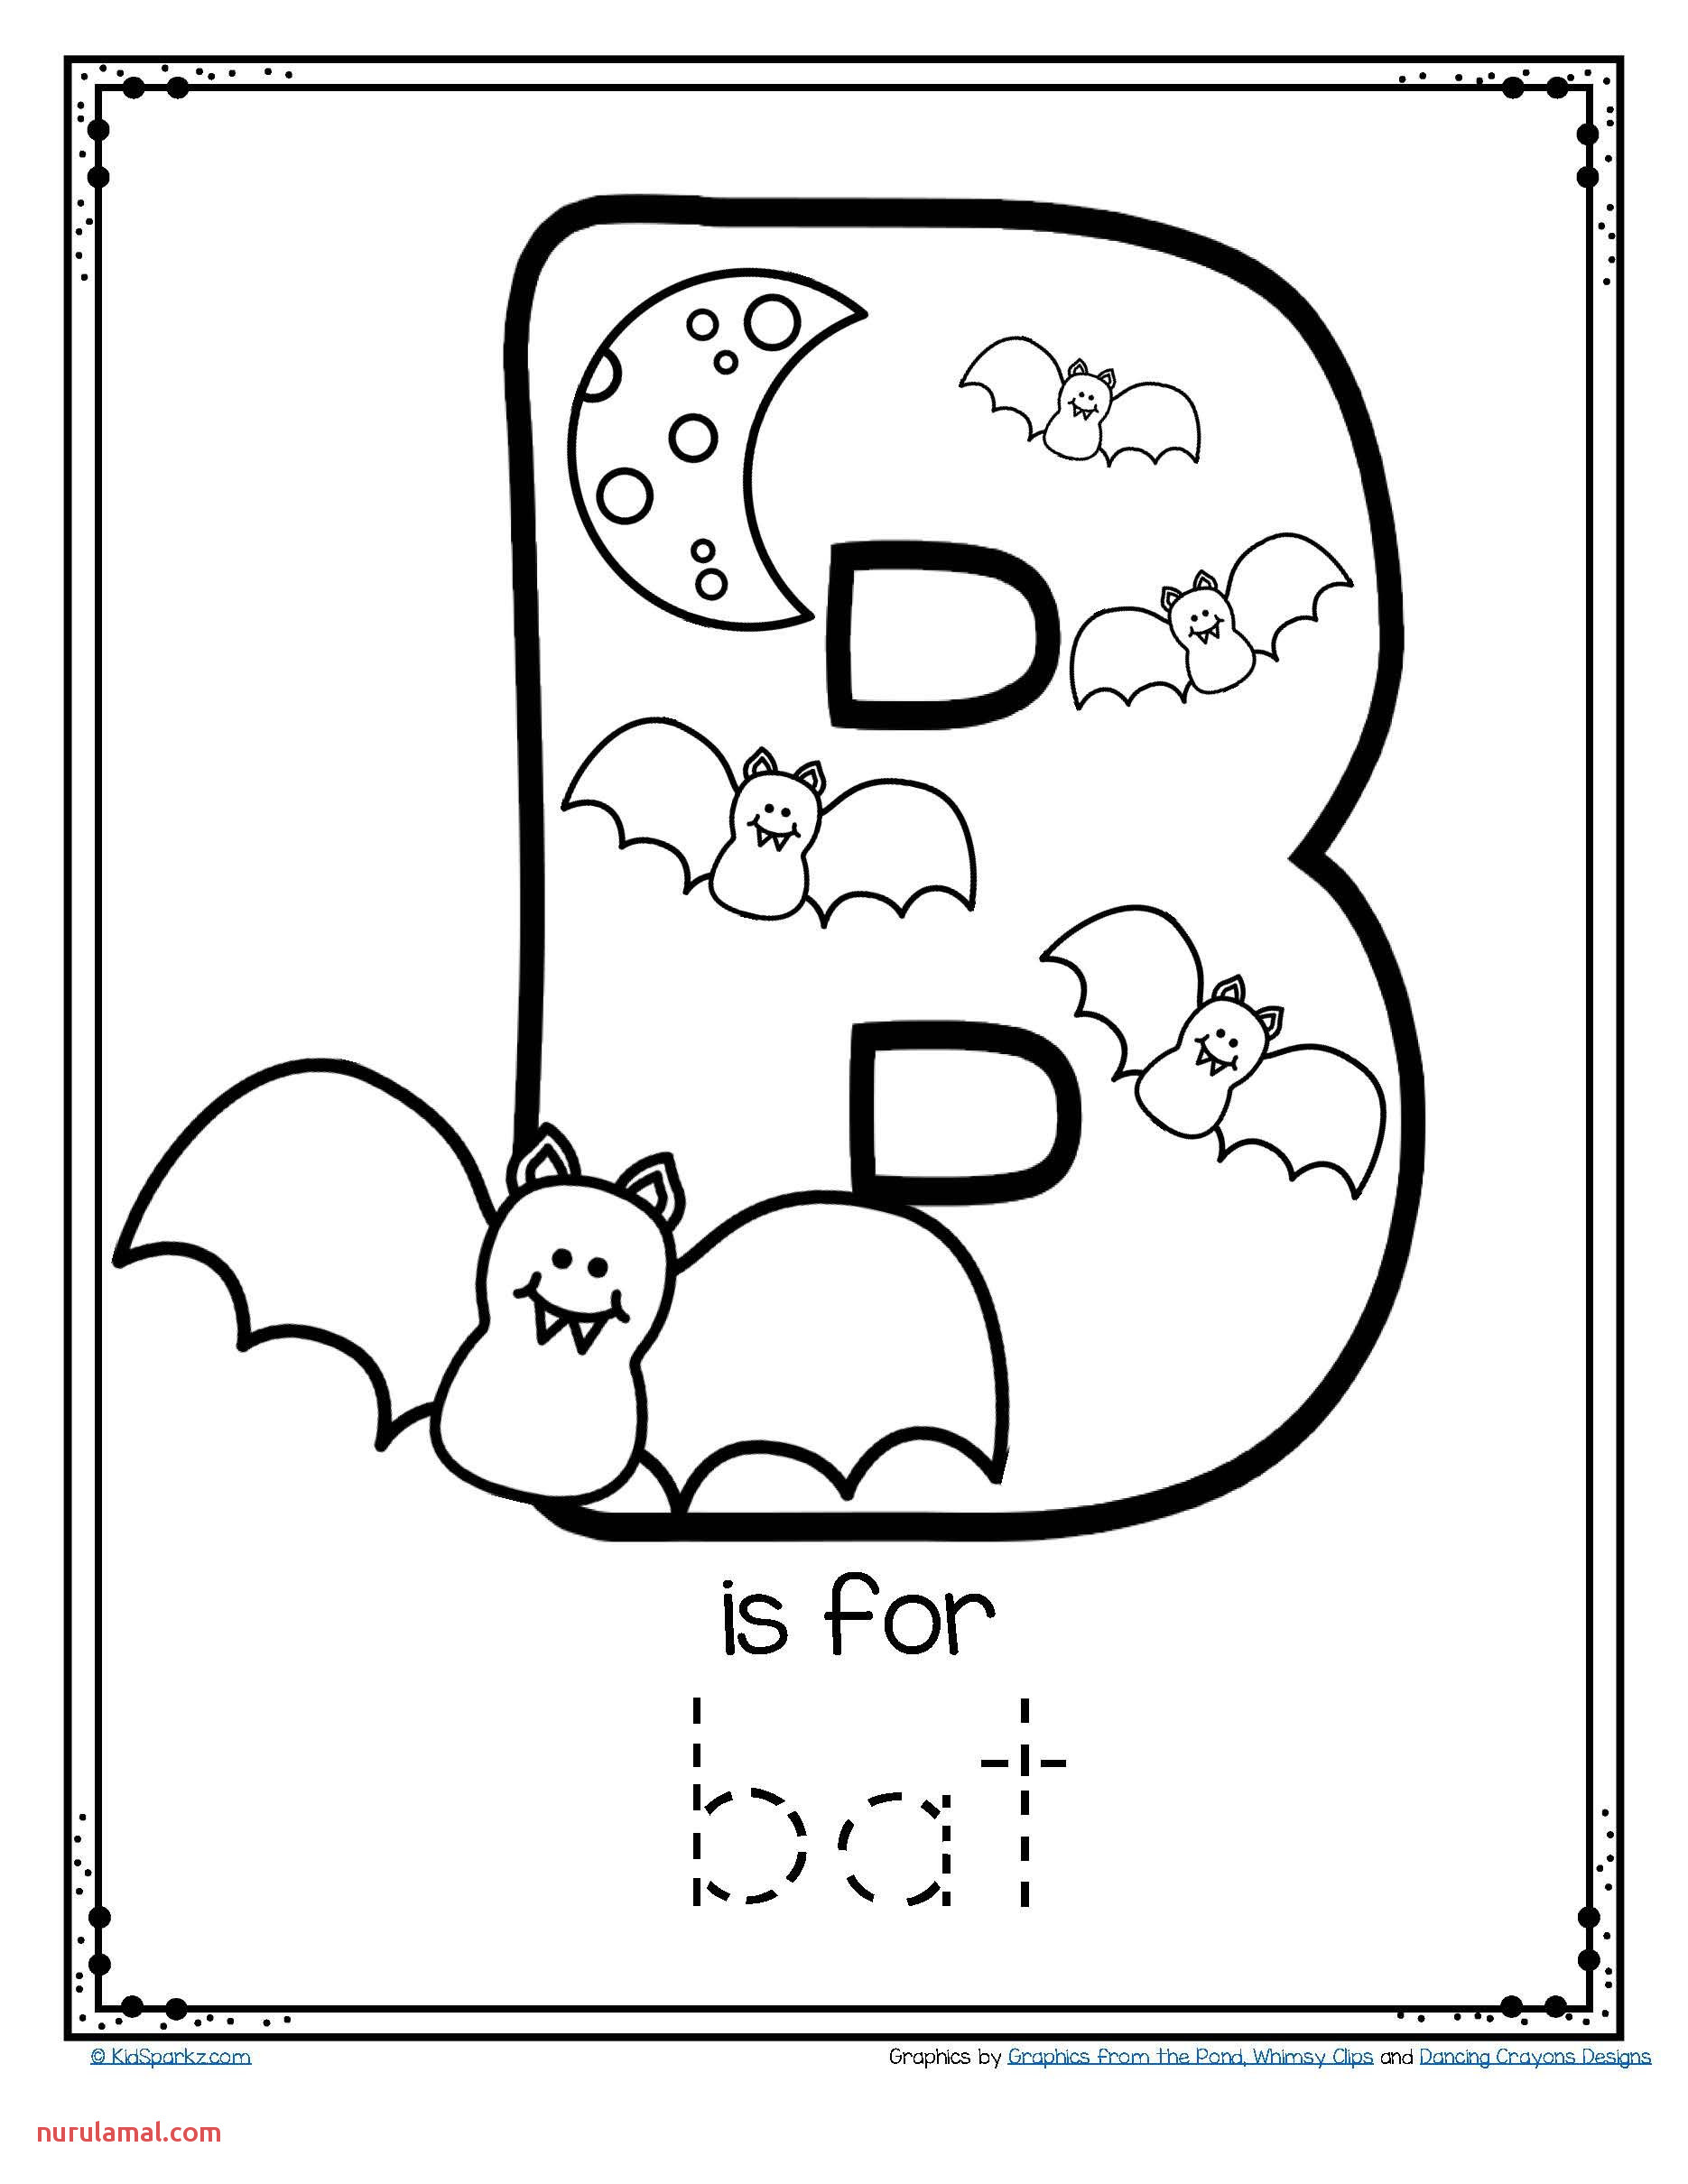 4 Year Old Worksheets Printable Lowercase Tracing